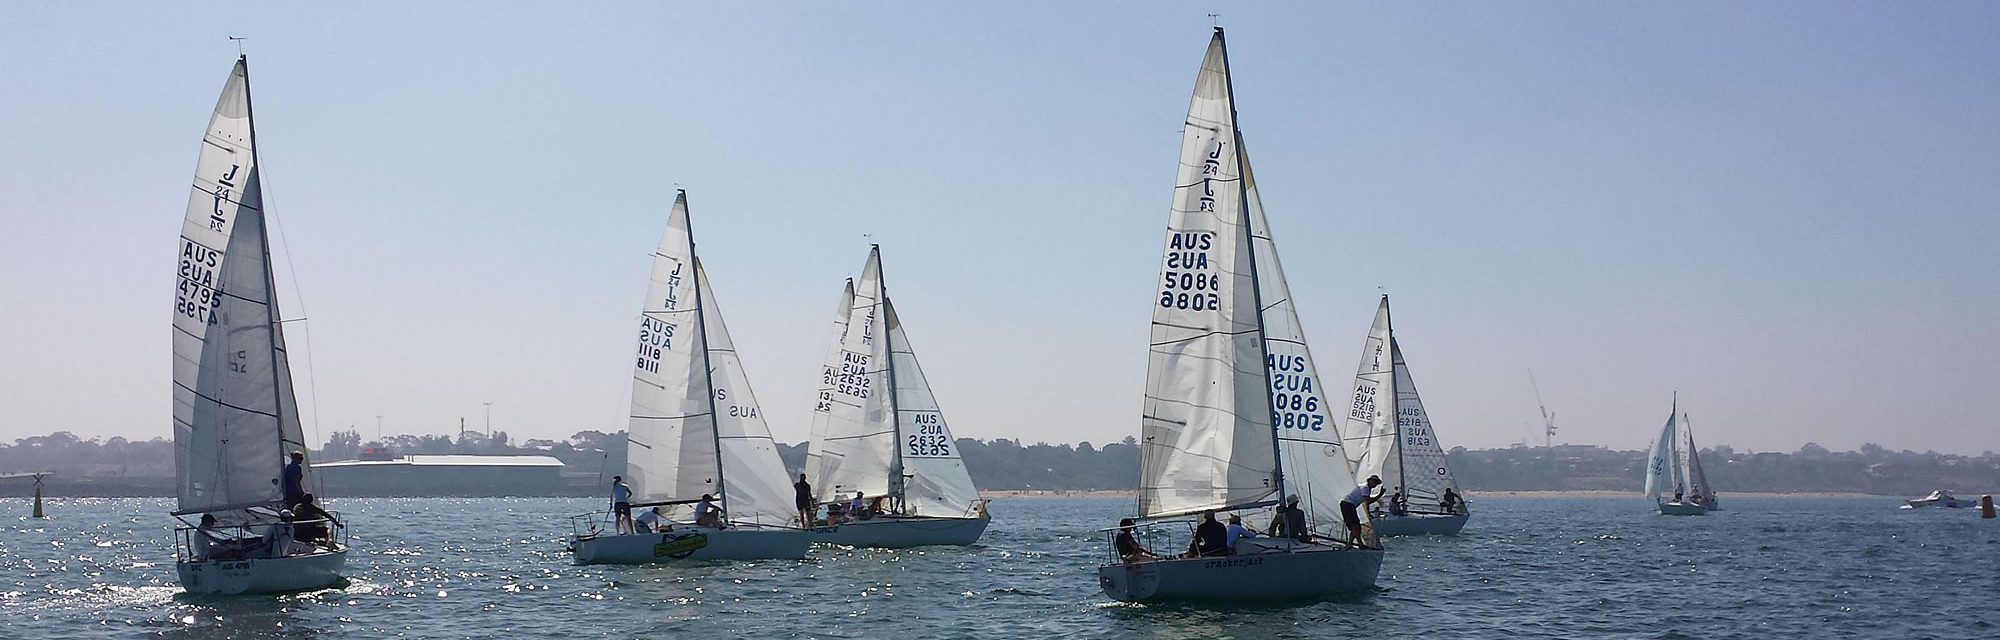 J24s Racing at Sandy